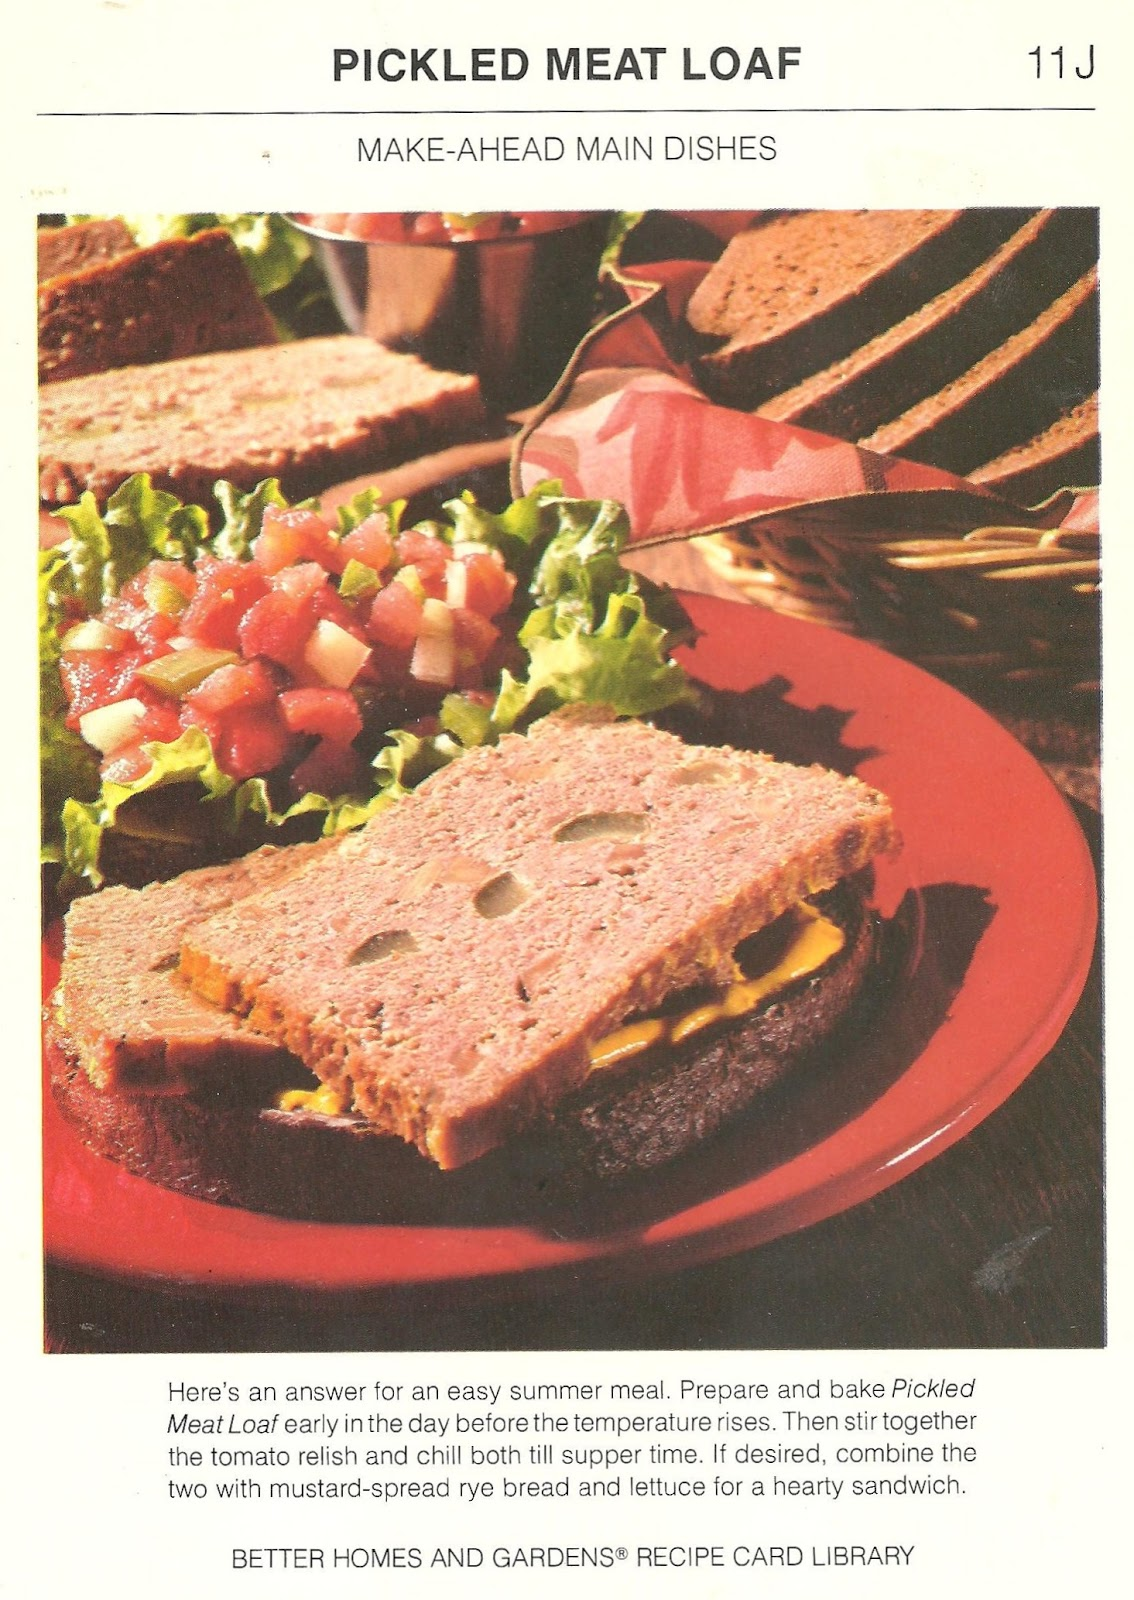 Bad and ugly of retro food new collection and recap recipe cards 19 no i think i will continue to beg the question of what constitutes an easy summer meal i can say that baking a pickled meatloaf early in the day is not forumfinder Gallery